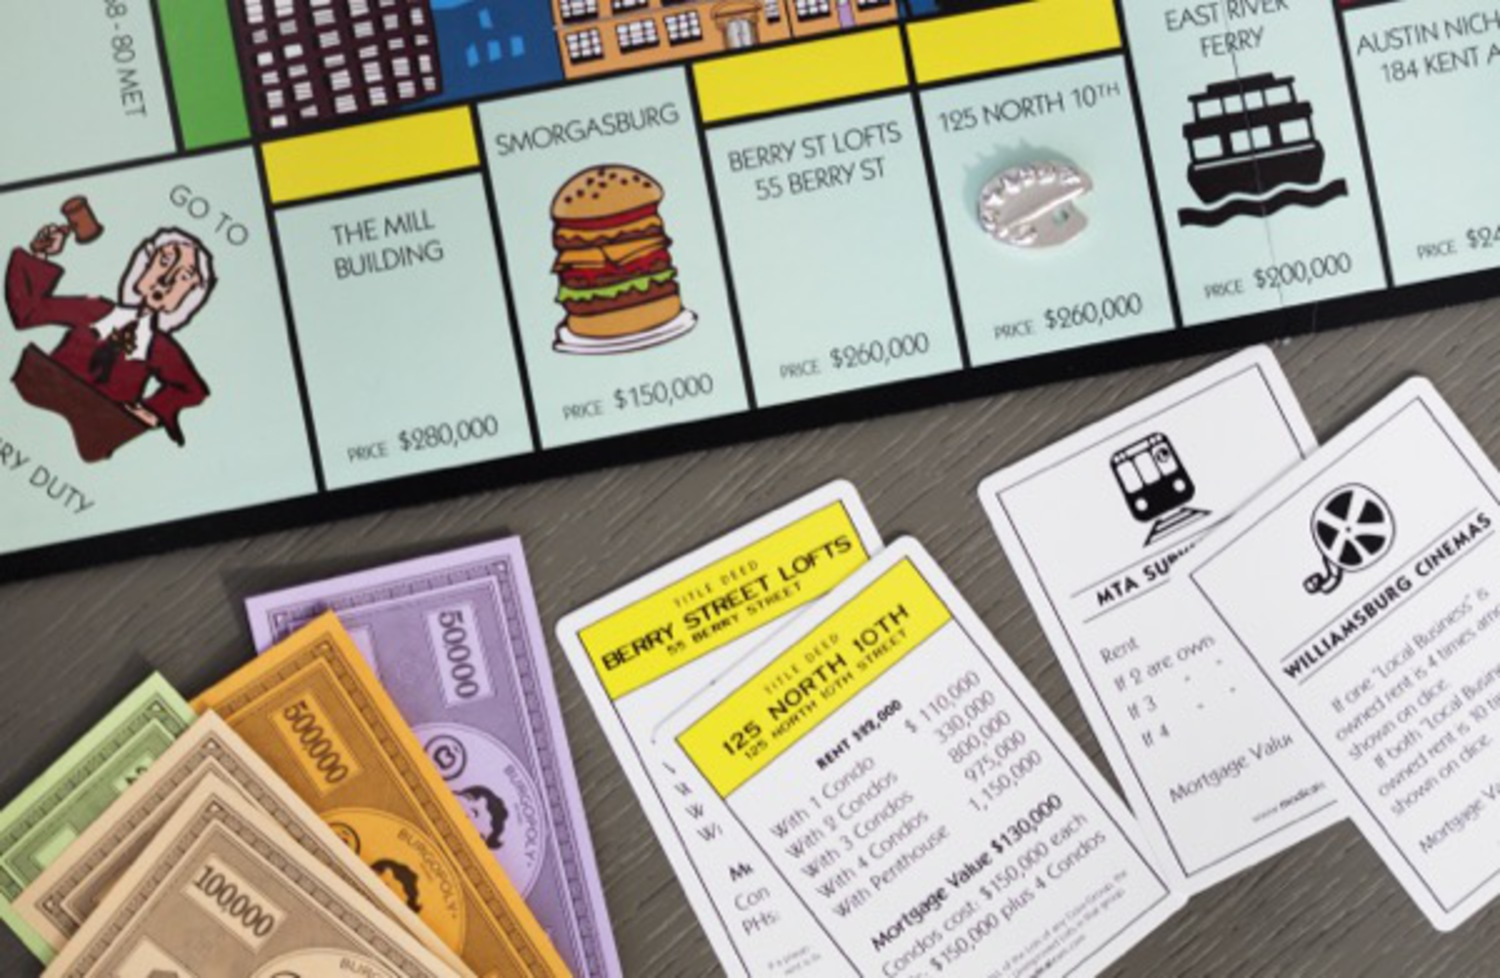 Burgopoly: The Classic Monopoly game through the eyes of Williamsburg